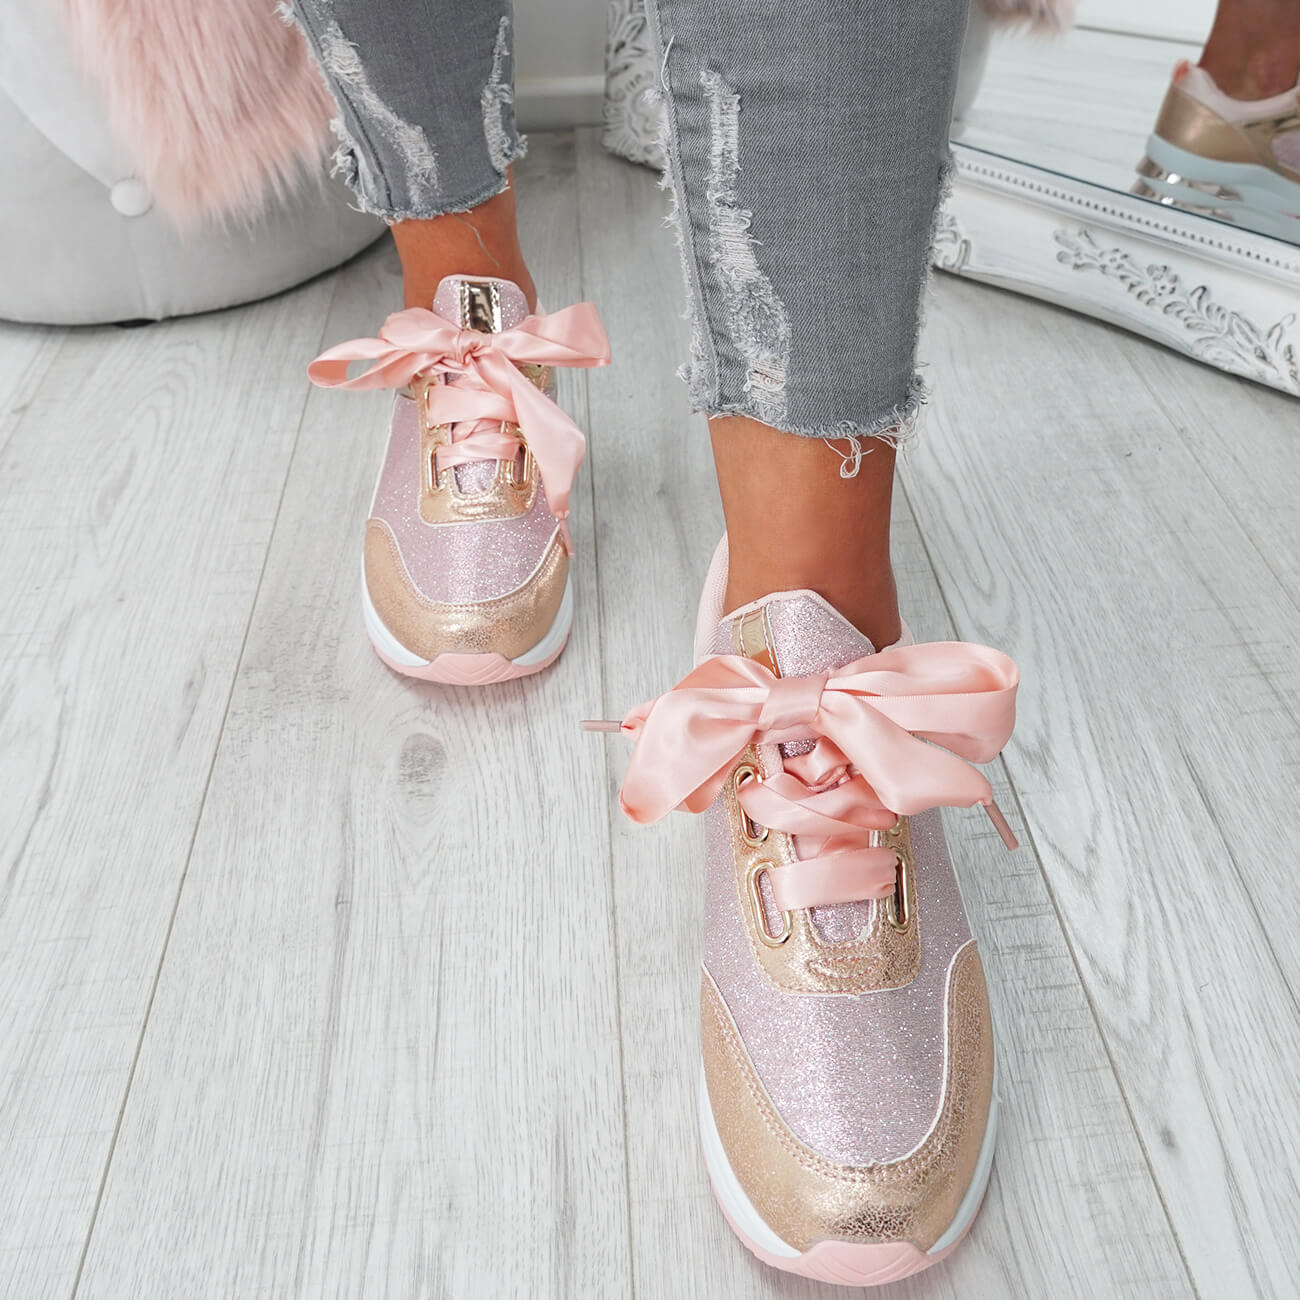 WOMENS-LADIES-RIBBON-TRAINERS-GLITTER-SPARKLE-SNEAKERS-RUNNING-FASHION-SHOES thumbnail 12